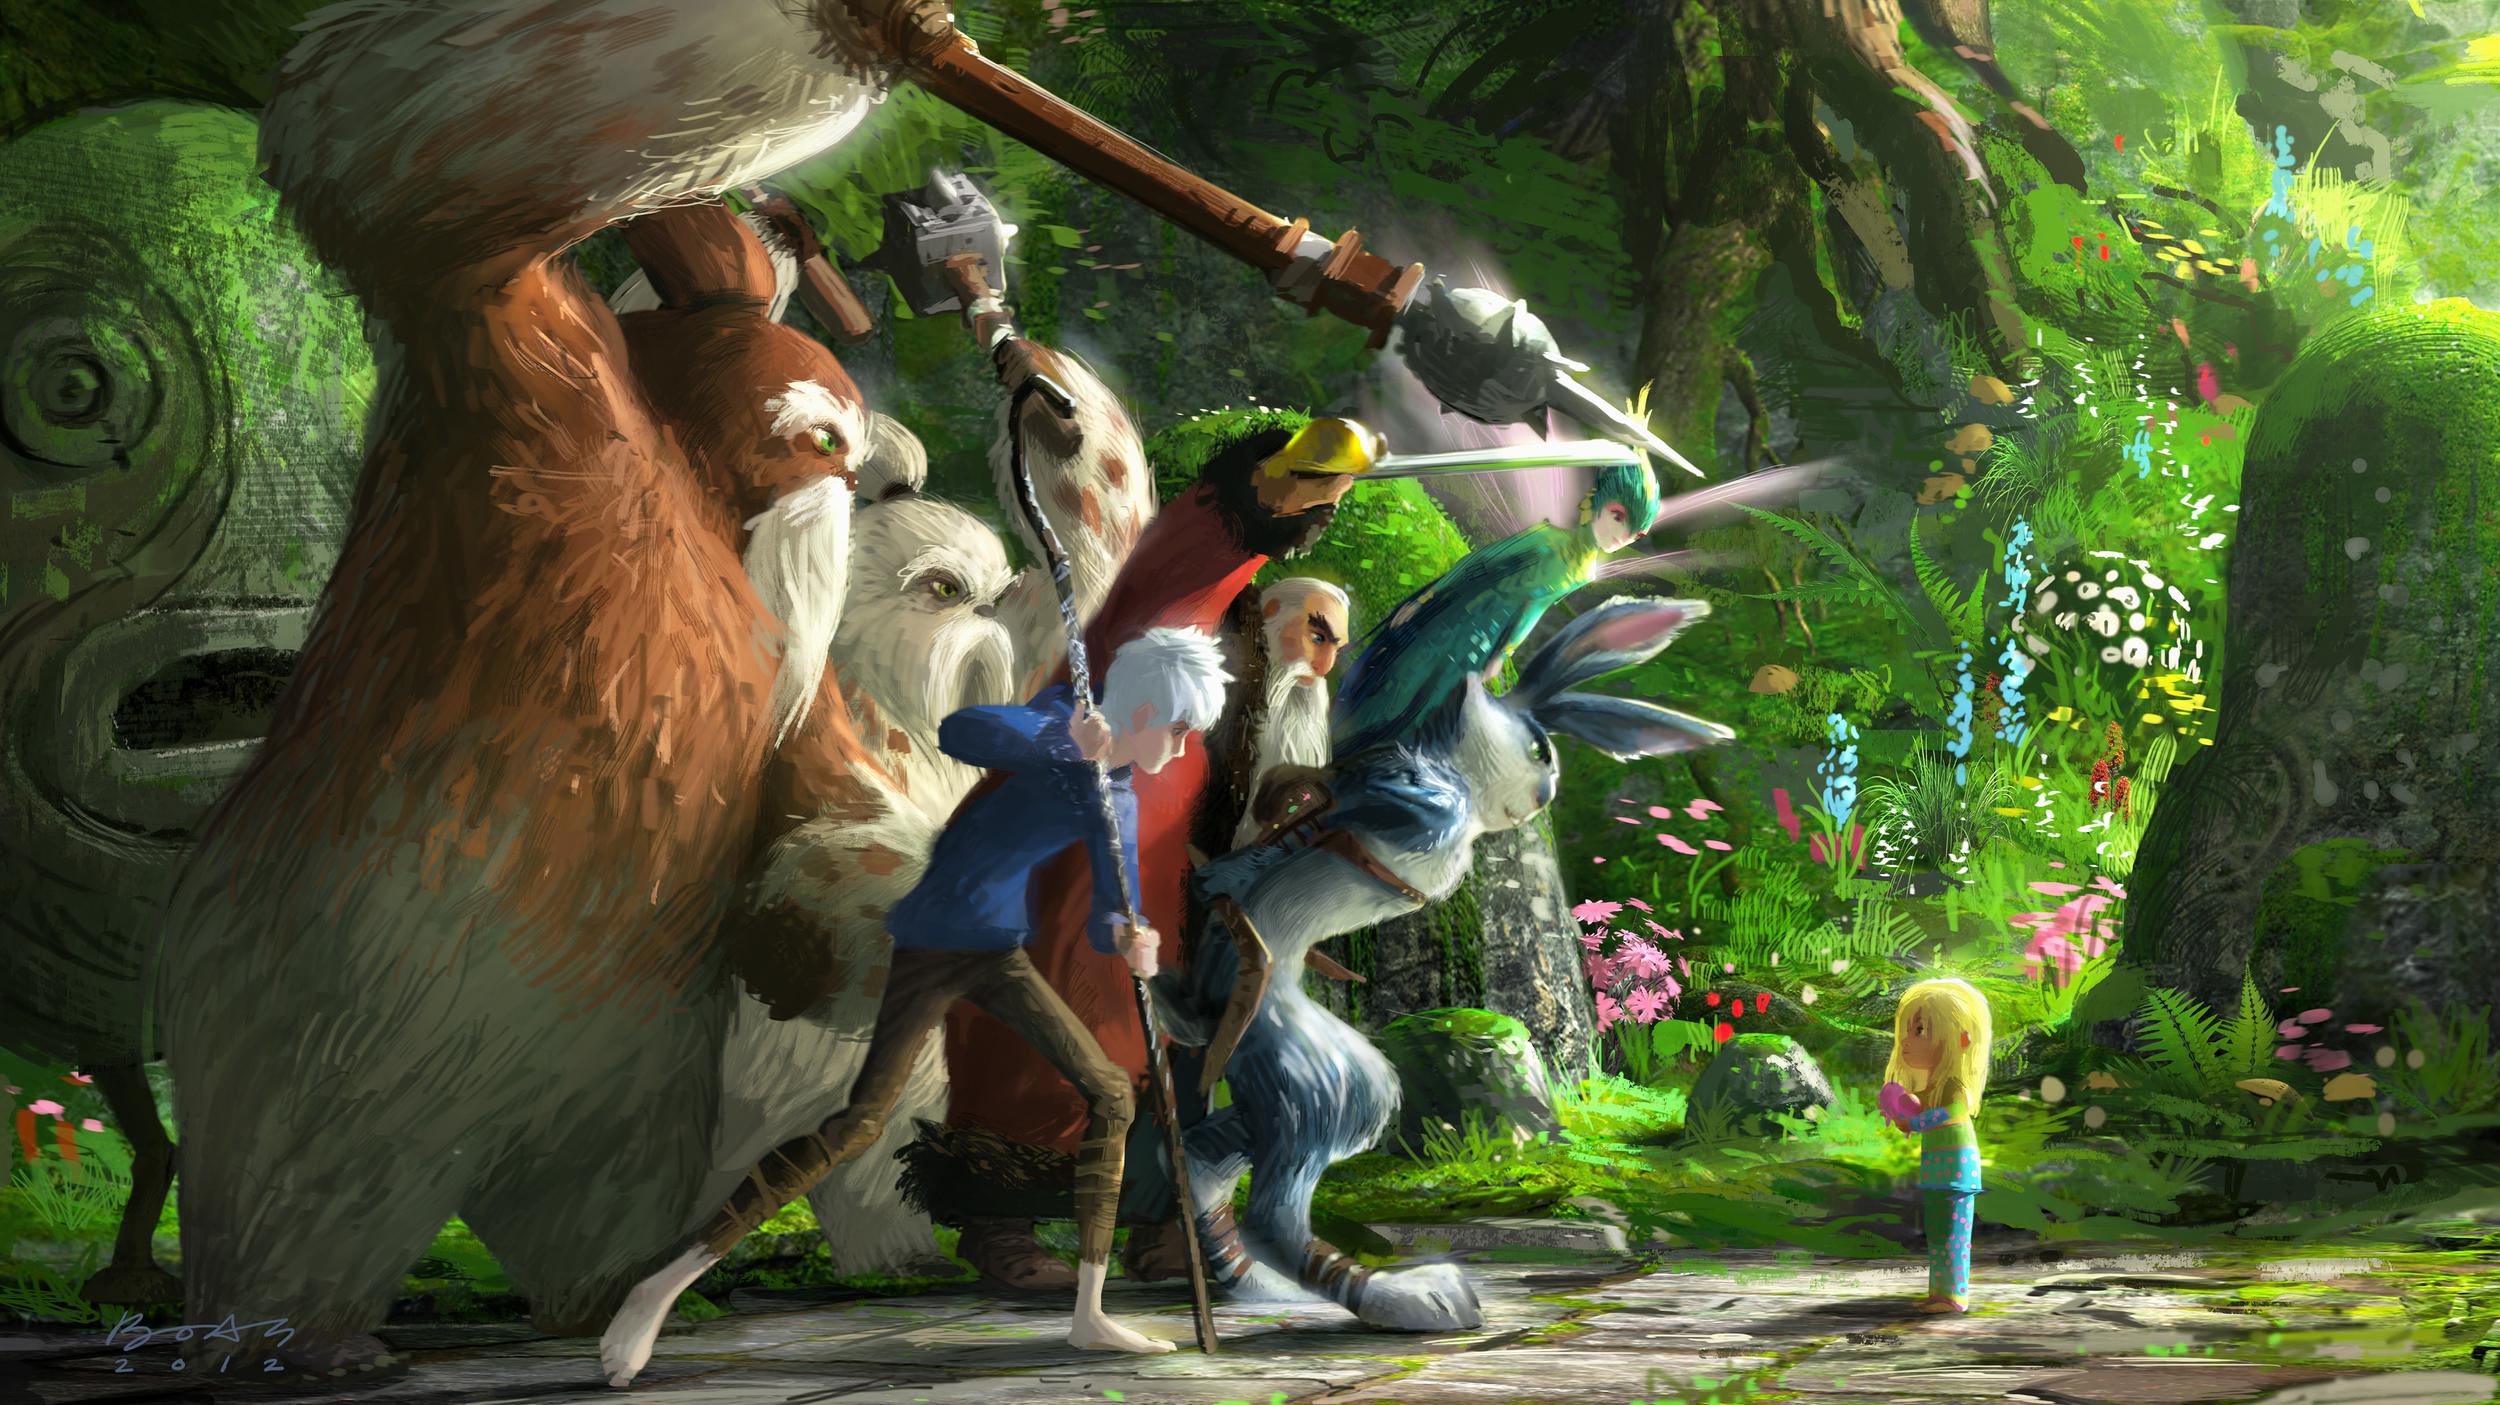 Rise of The Guardians, DWA Color key - Bunnymund location